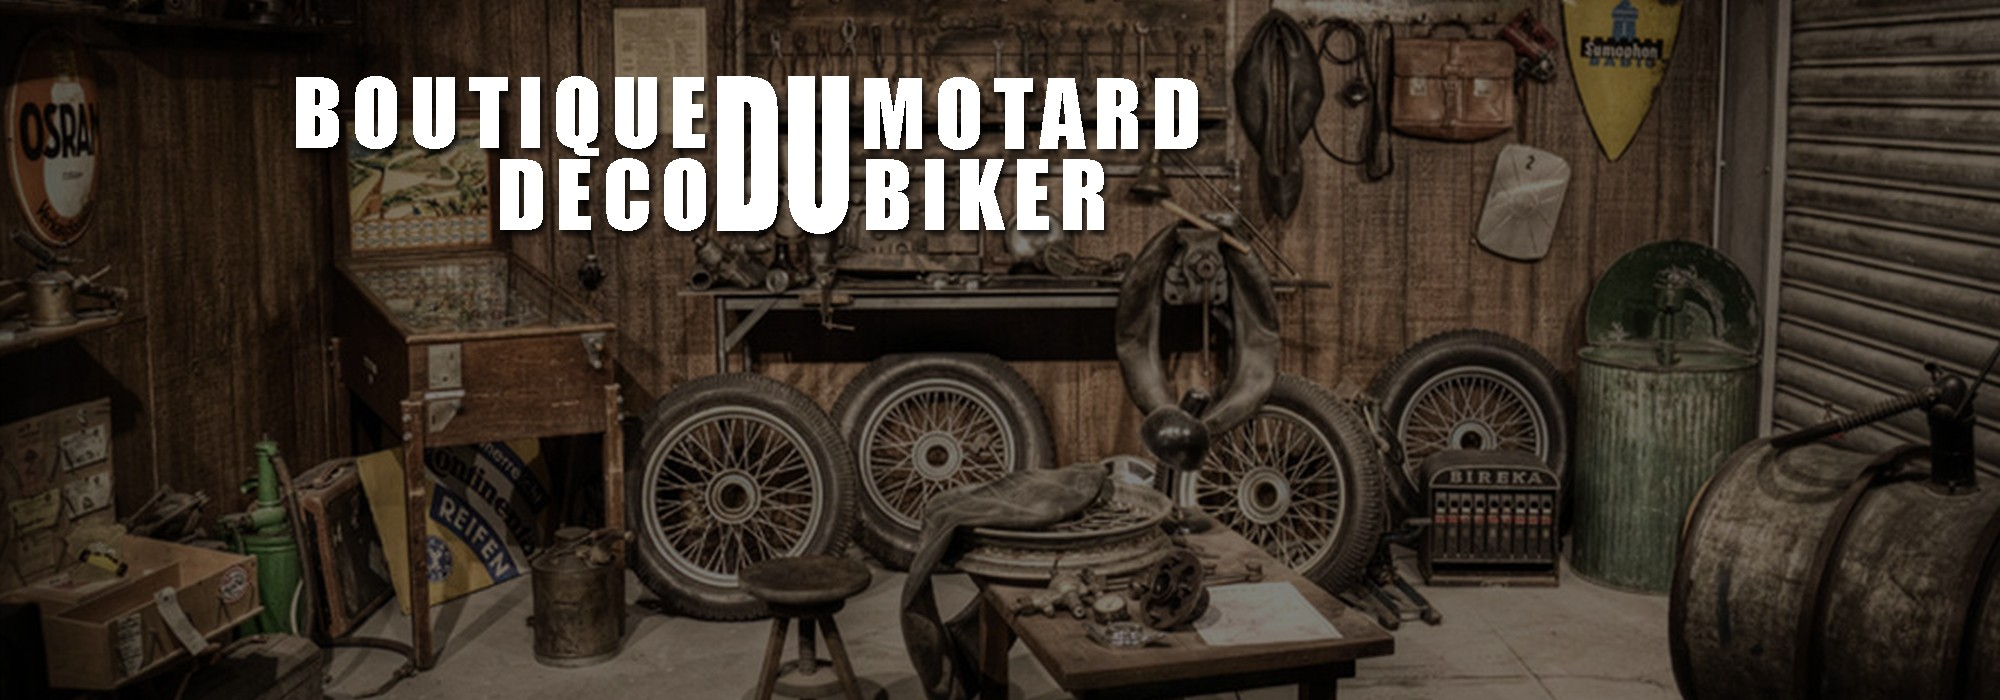 La boutique décorative du motard